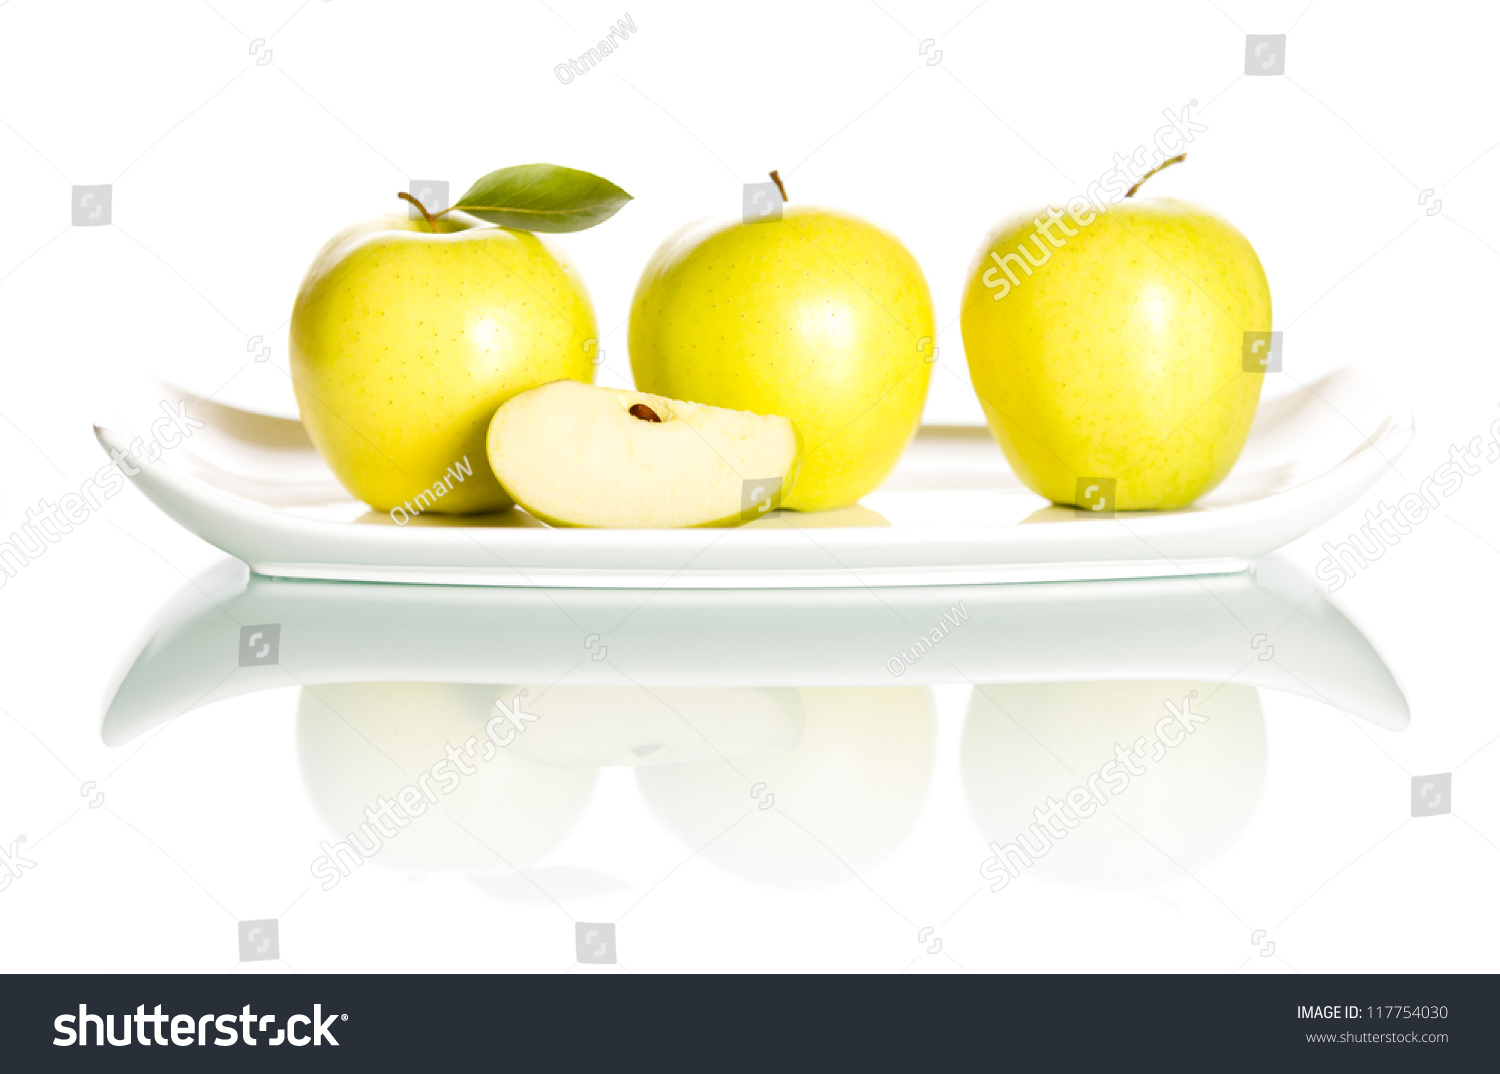 delicious green apple illustration - photo #49